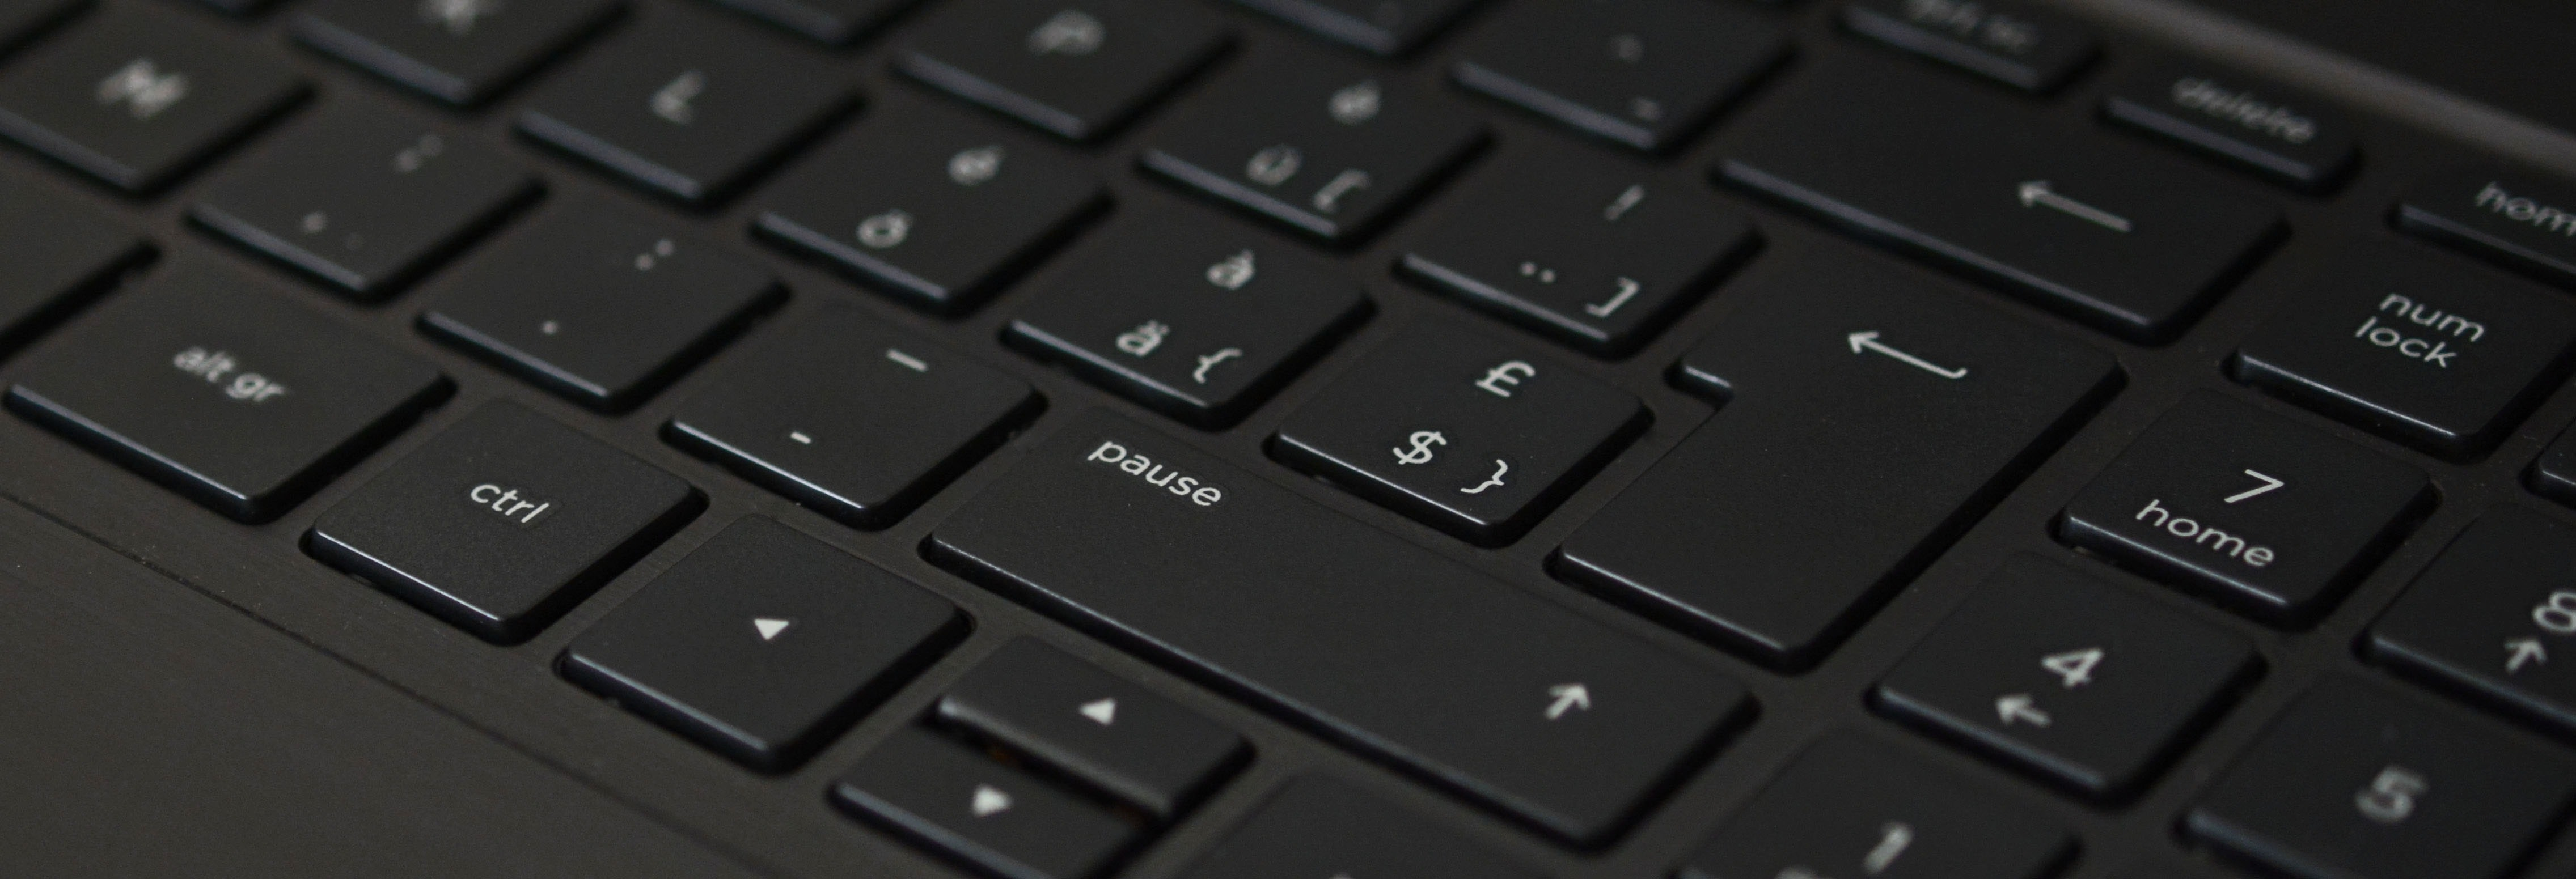 Computer Images Pexels Free Stock Photos Diagram With Its Parts Best Laptops Under 500 Black Laptop Keyboard Fetching More